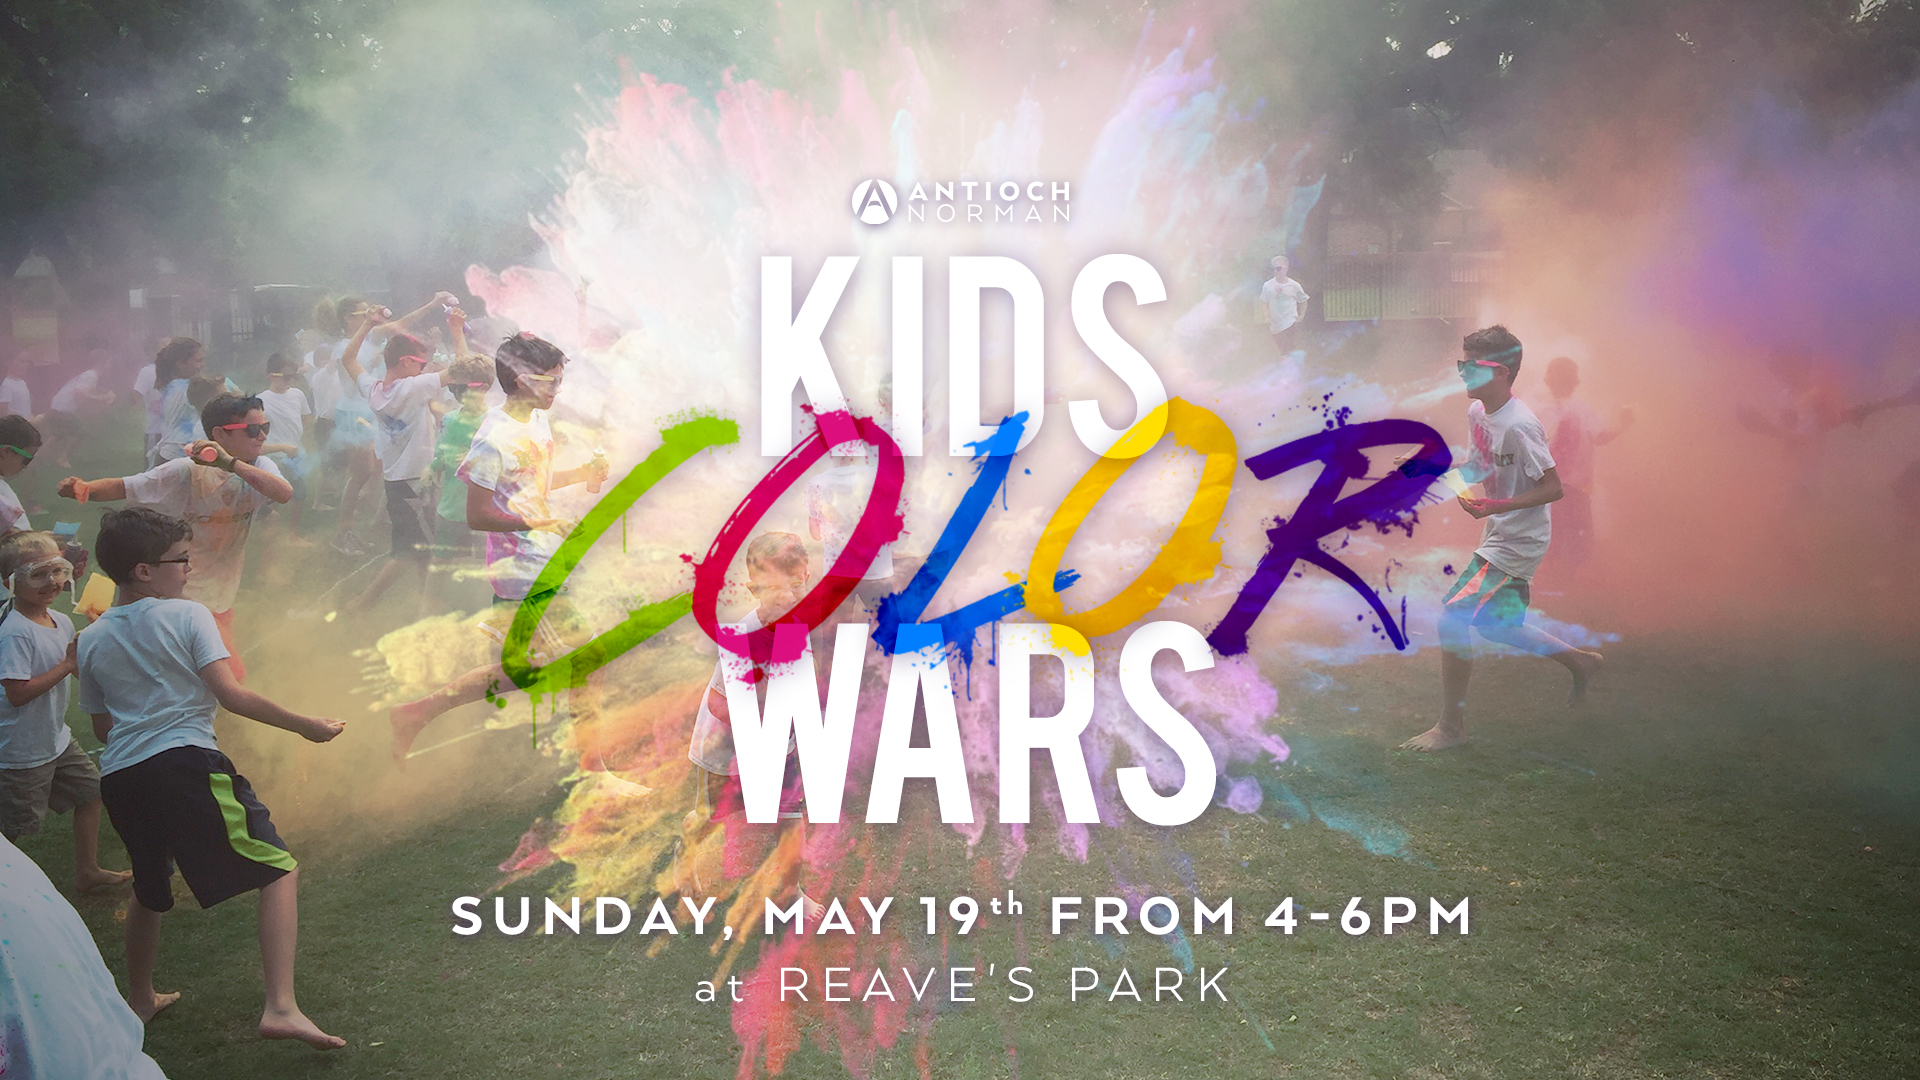 Antioch_Kids-Color-Wars_5.19.19.jpg